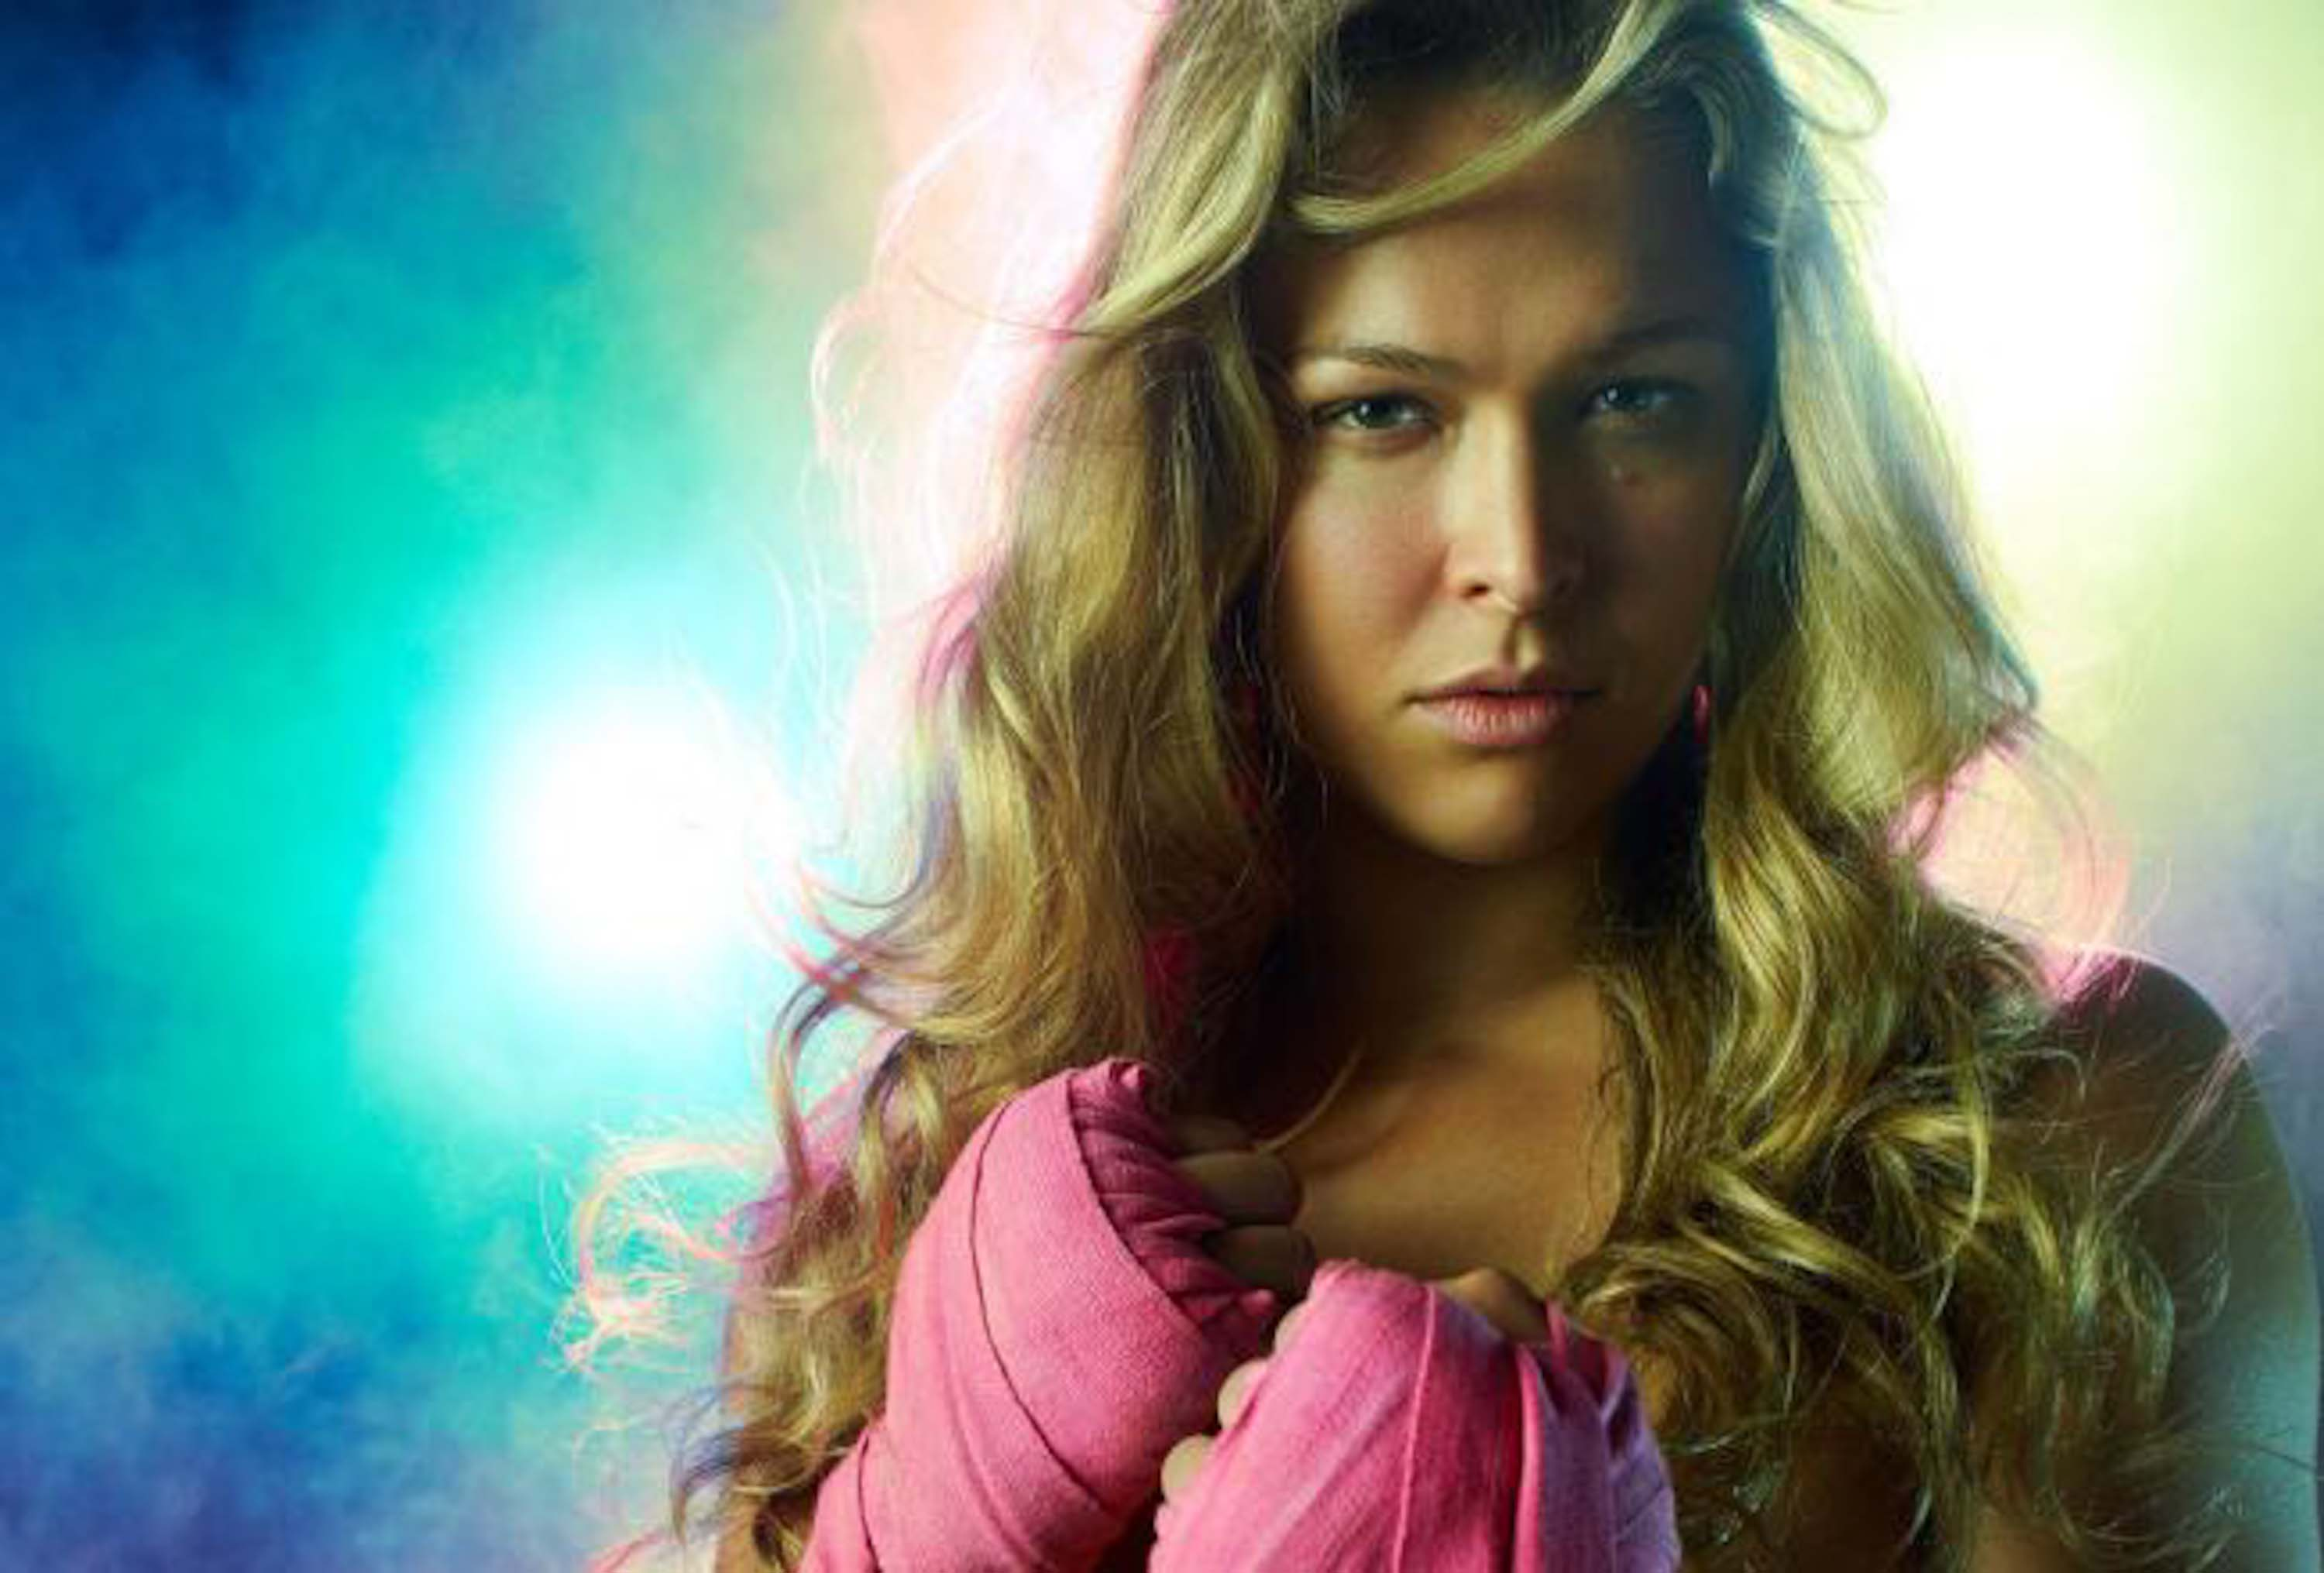 Why Does Ronda Rousey Hate Steroid Users So Much?